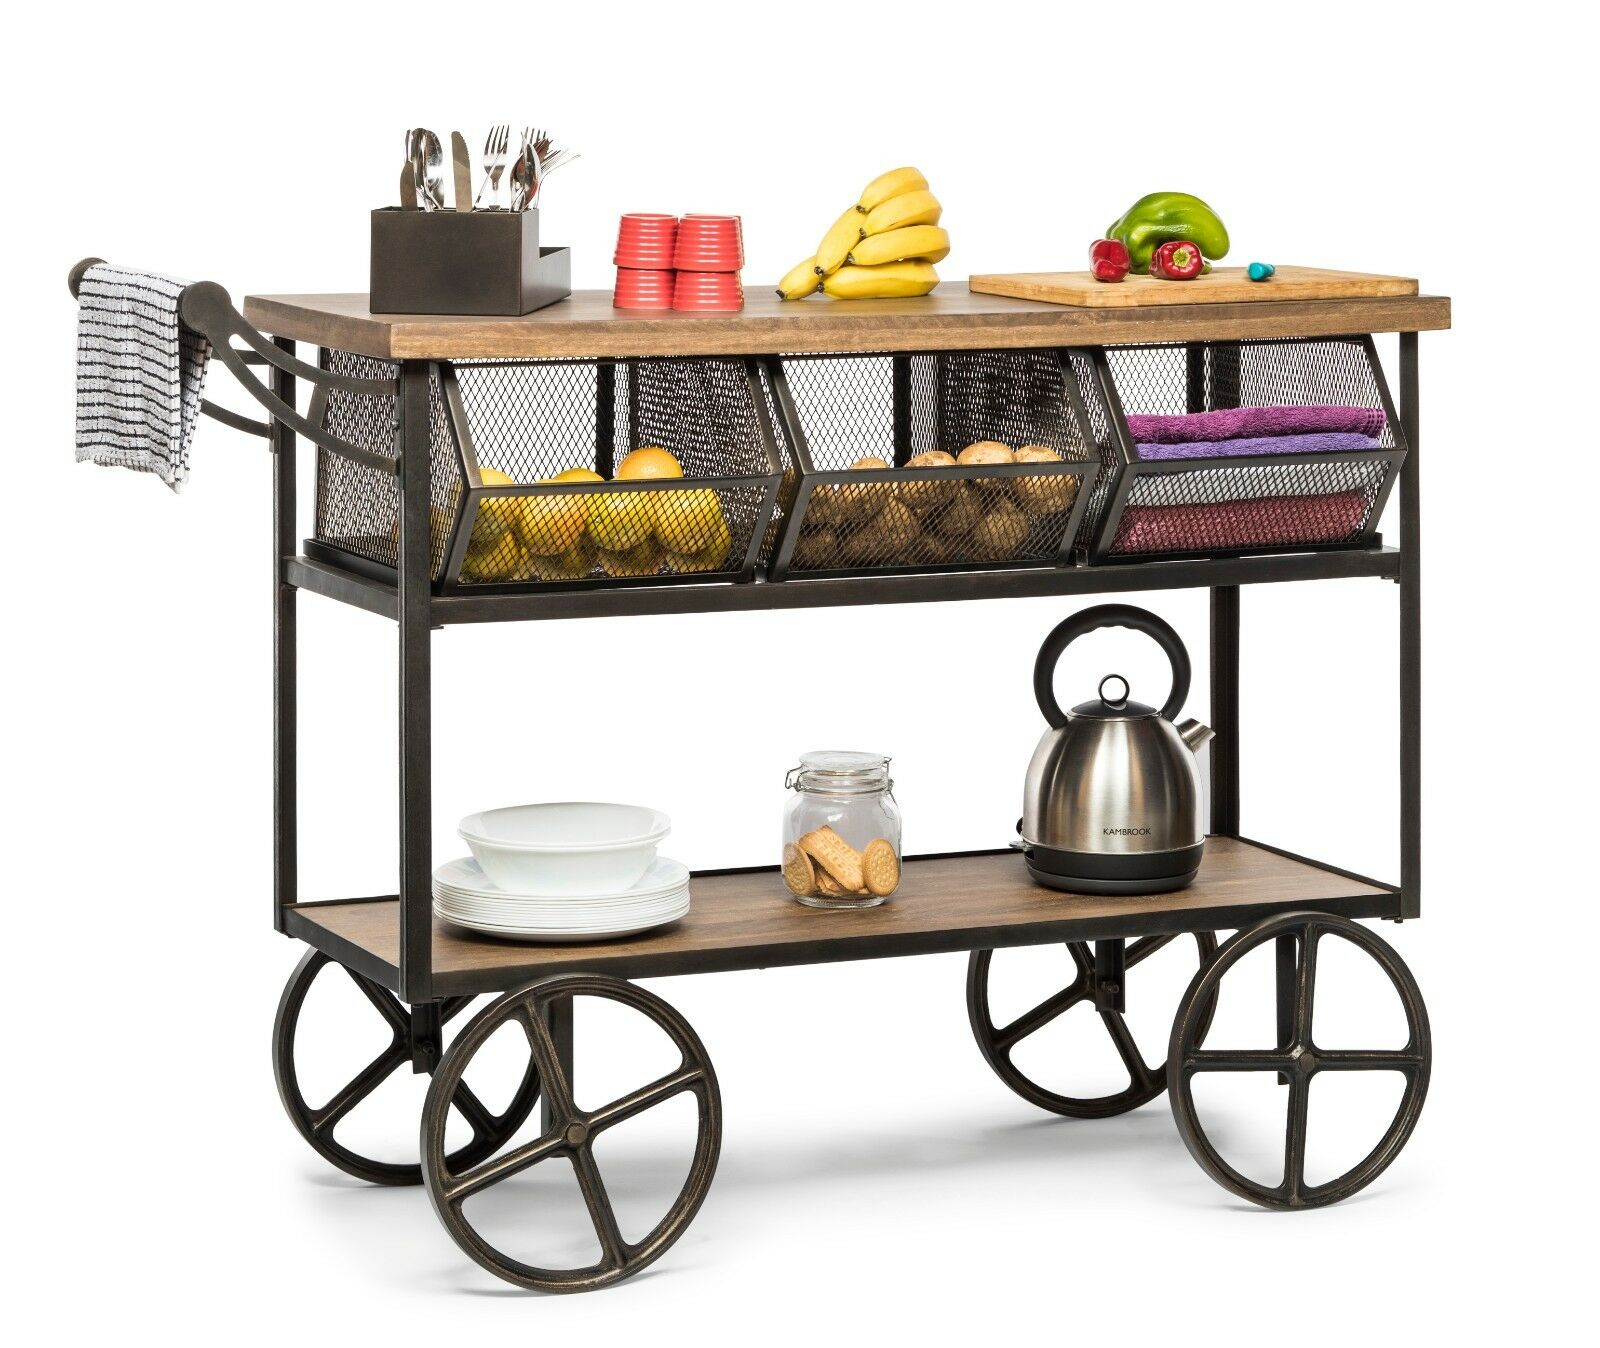 Picture of: Kitchen Trolley Island Bench Storage Organiser Drawer 3 Shelves On Wheels Ebay